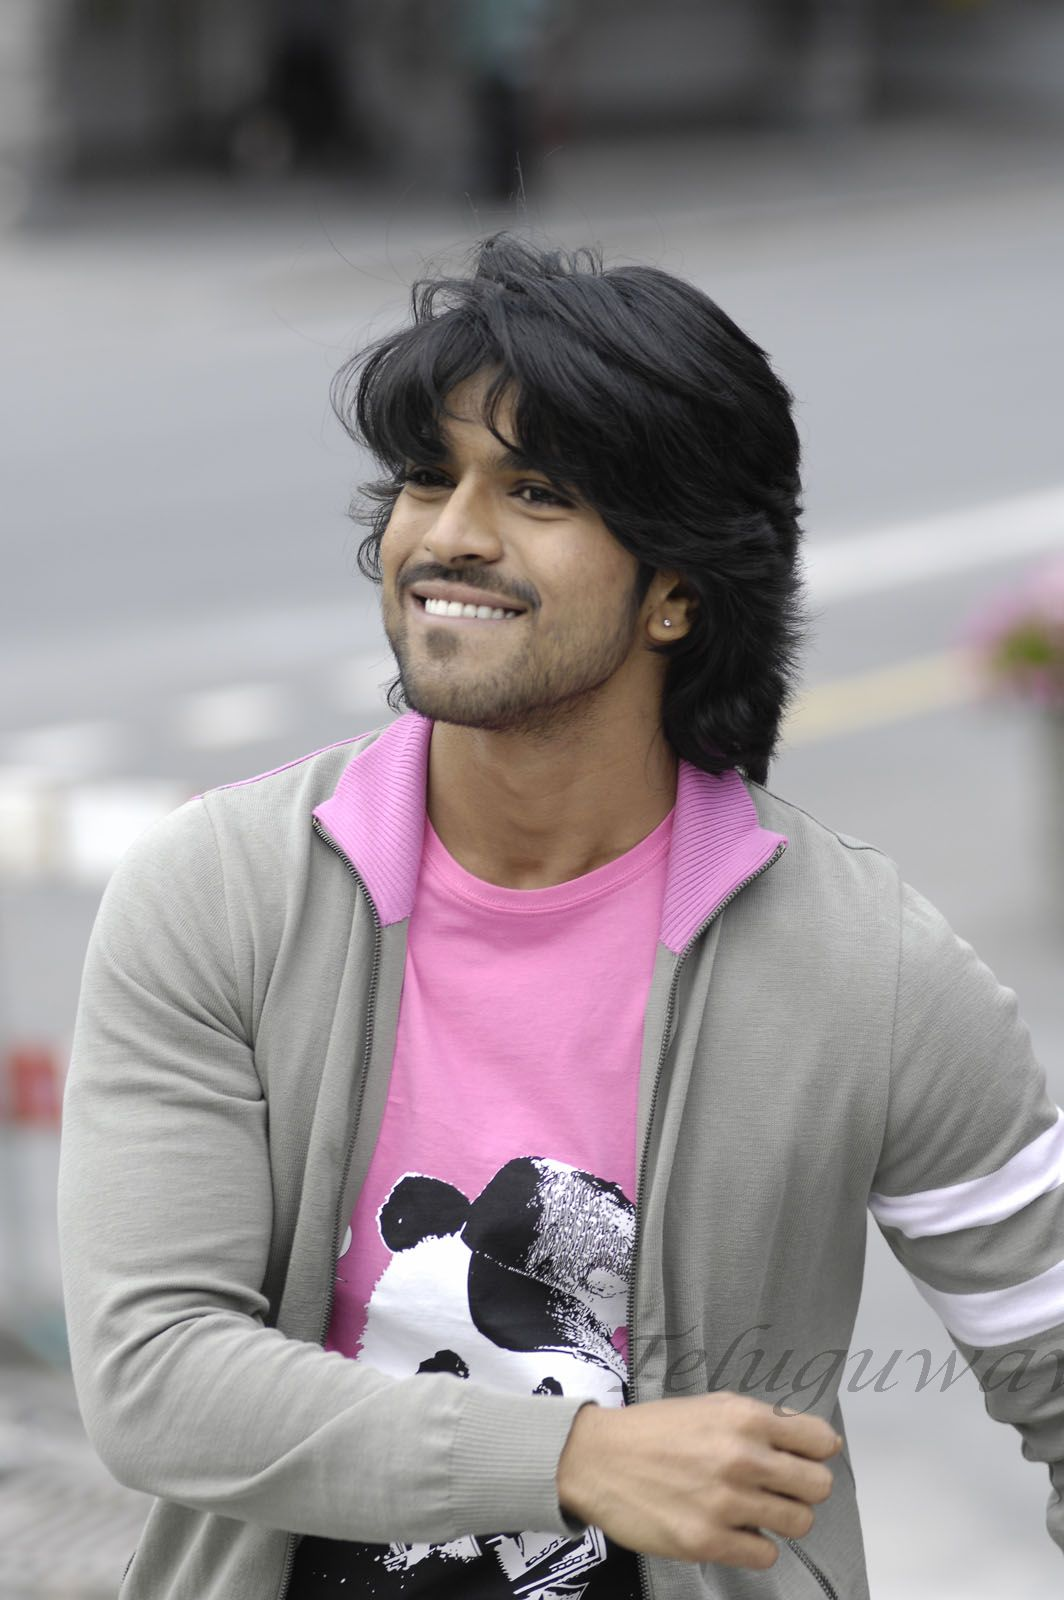 Ram Charan Teja Photo 1 Of 120 Pics Wallpaper Photo 489512 Theplace2